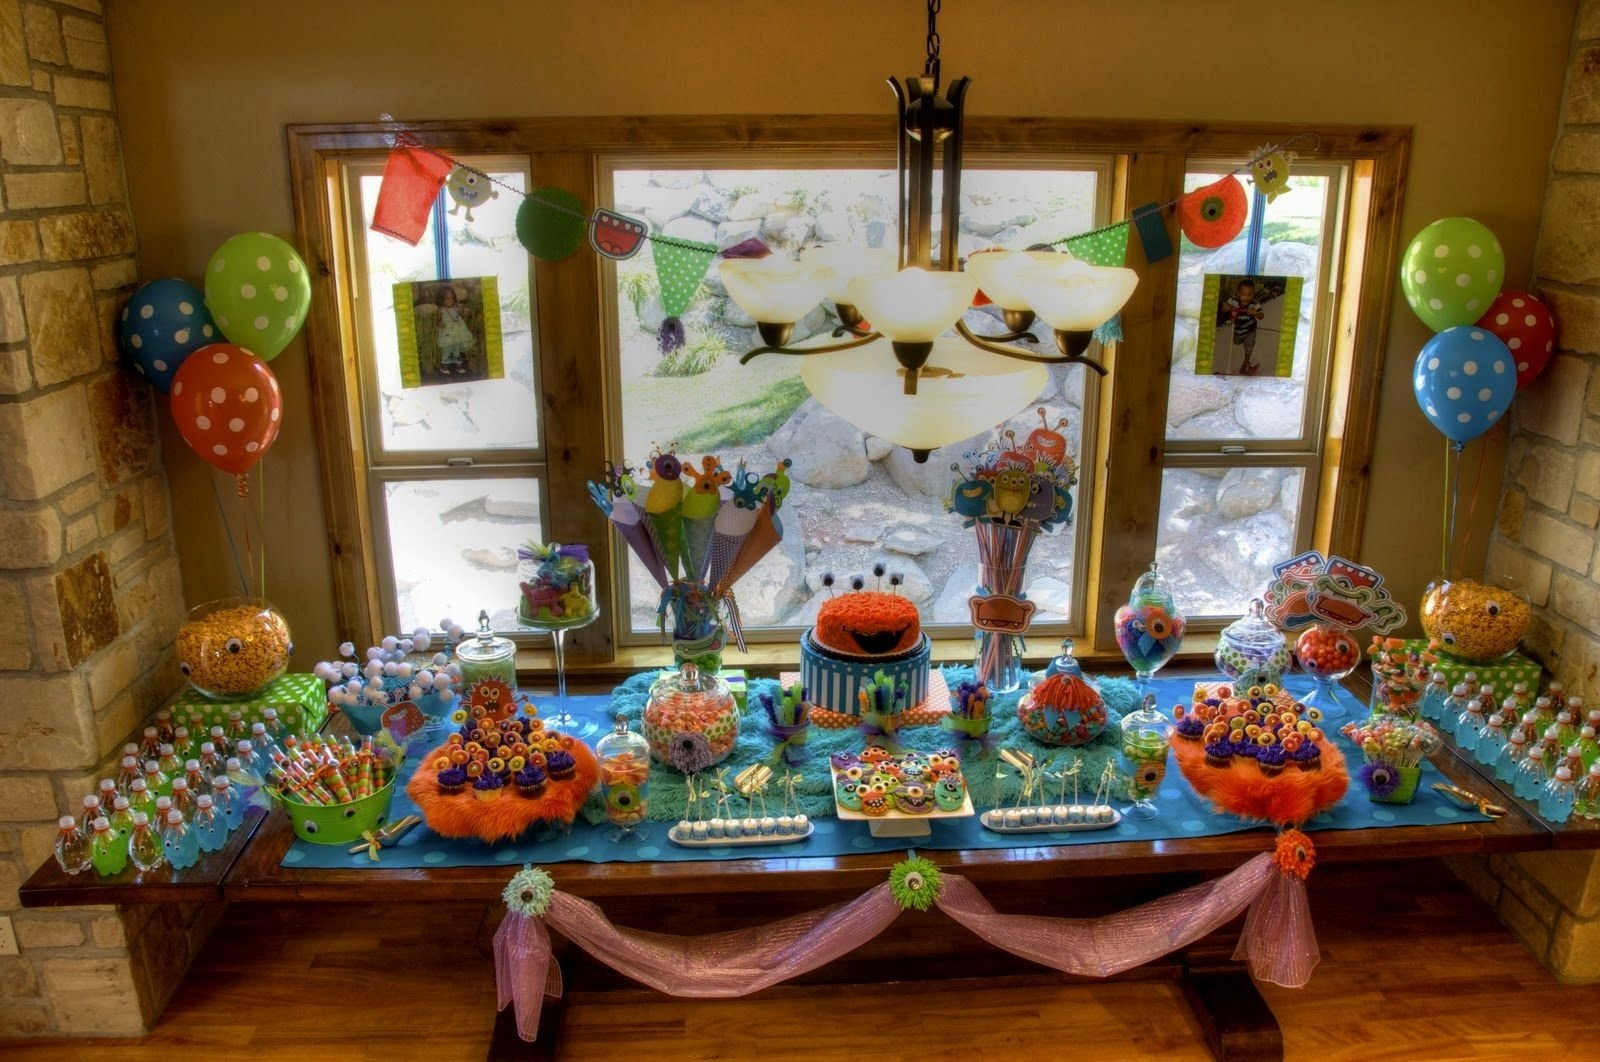 10 Lovable 8 Year Old Birthday Party Ideas For Boys Boy